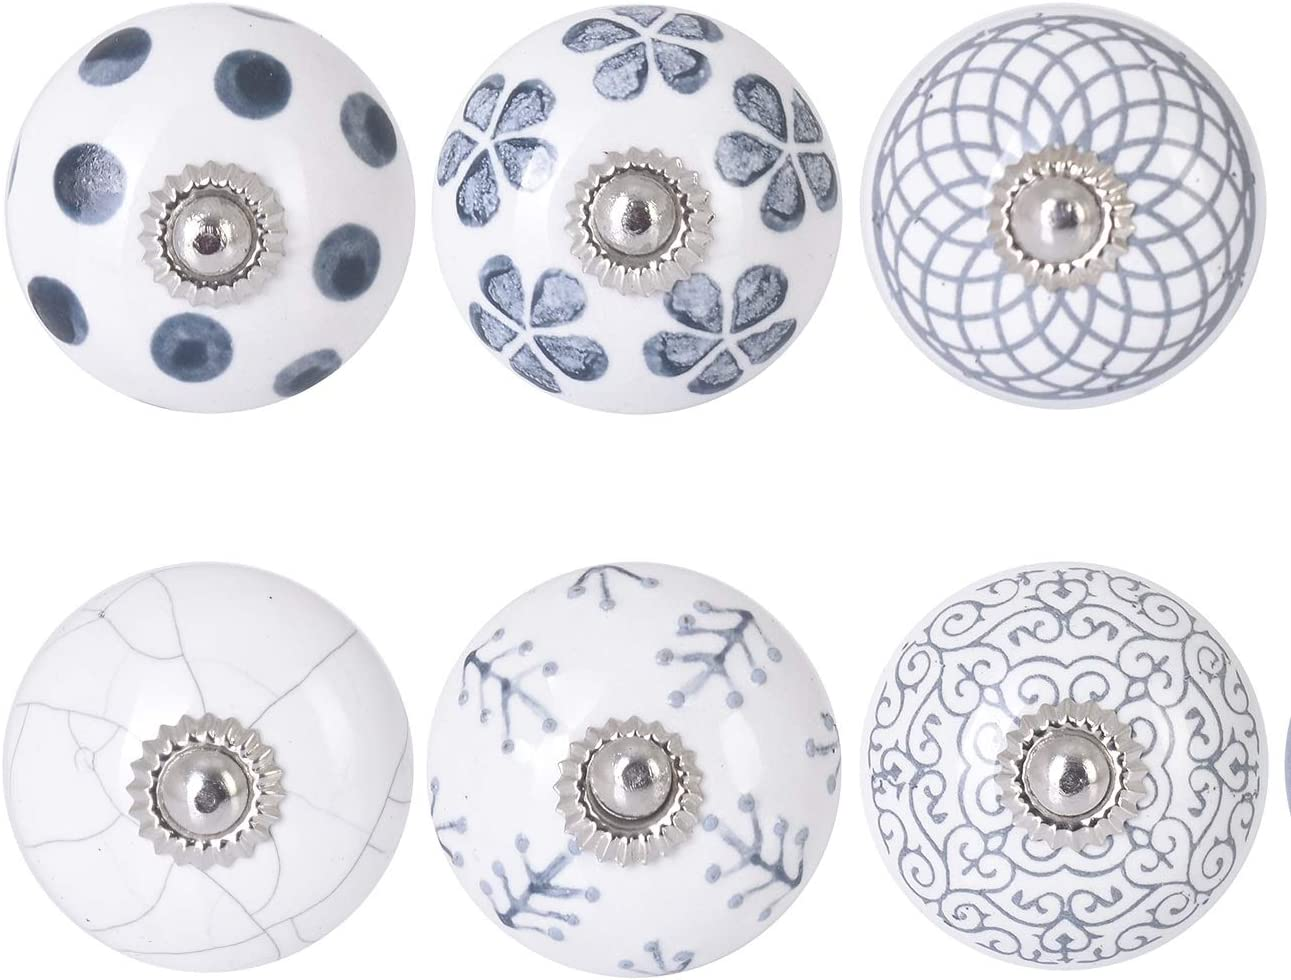 Orien Craft Ceramic Knobs Grey & White Cream Rare Hand Made in India Premium Quality Assorted Pumpkin knobs Cabinet Drawer Handles Pulls Ceramic Cabinet Knobs with Fitting Hardware (6, Grey)